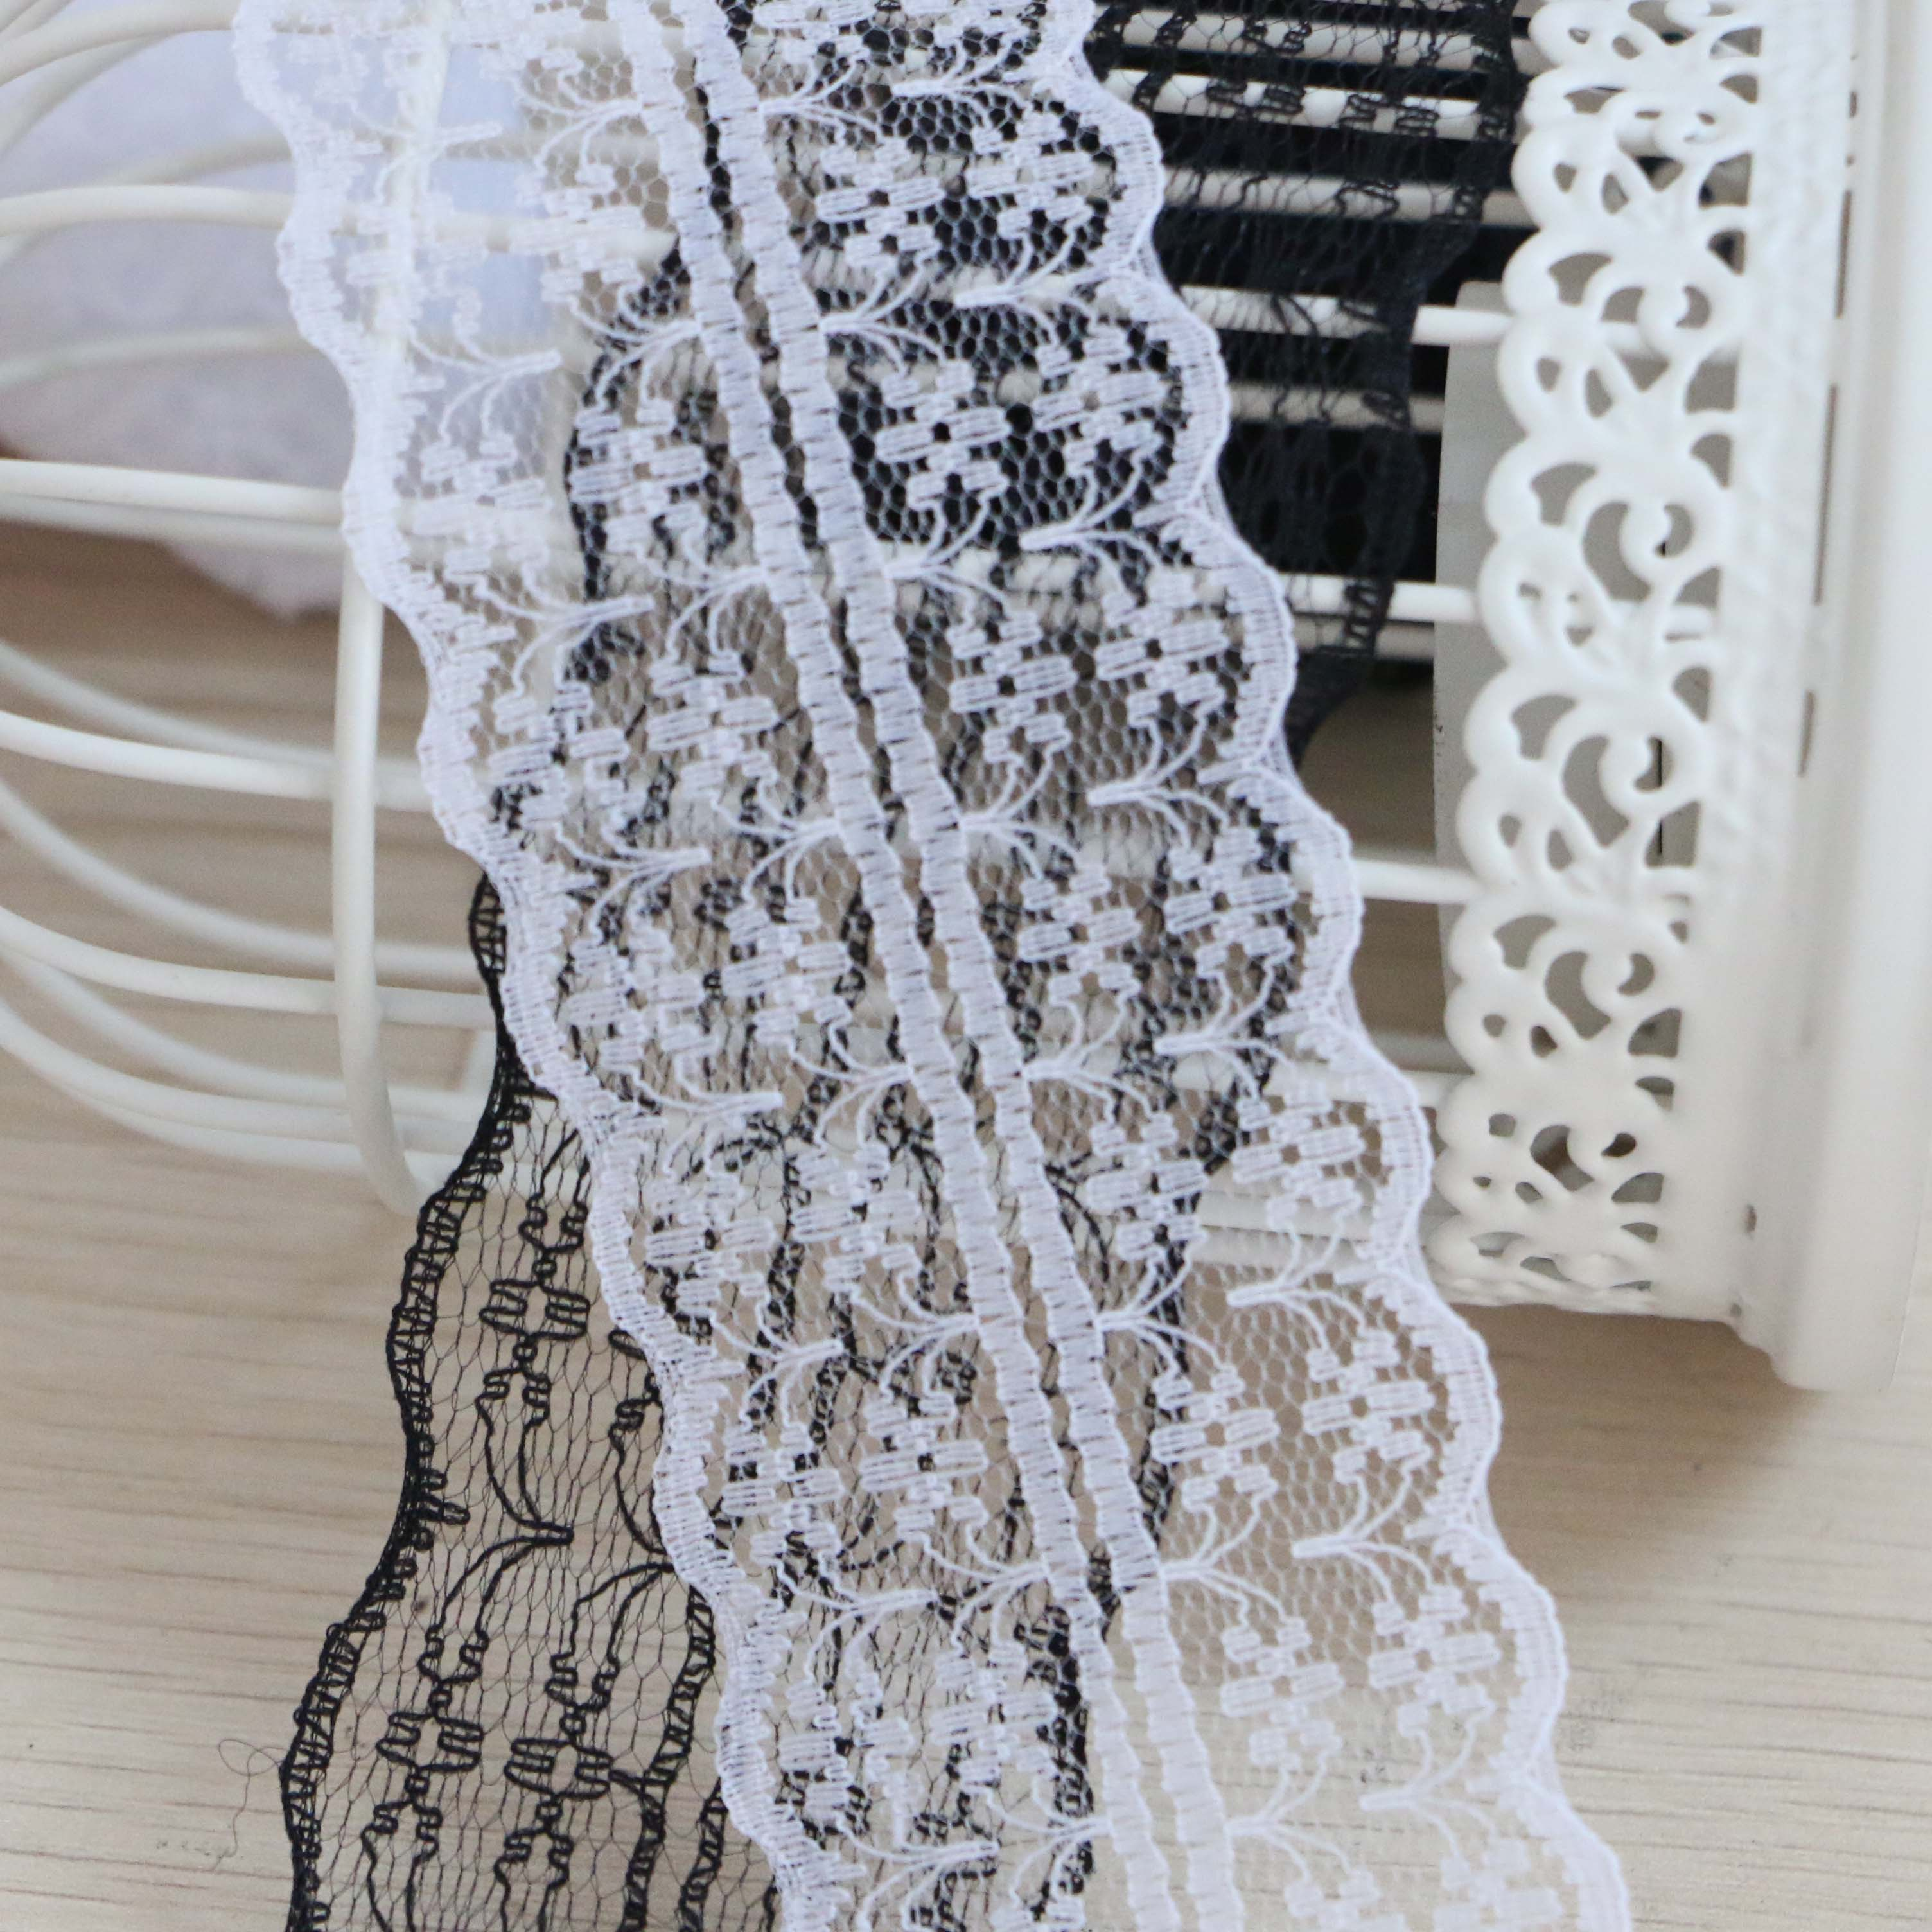 hamlergoodchain.ga provides 55 decorative lace trim items from China top selected Sewing Notions & Tools, Apparel suppliers at wholesale prices with worldwide delivery. You can find lace, Polyester decorative lace trim free shipping, decorative lace trim and view 5 decorative lace trim .